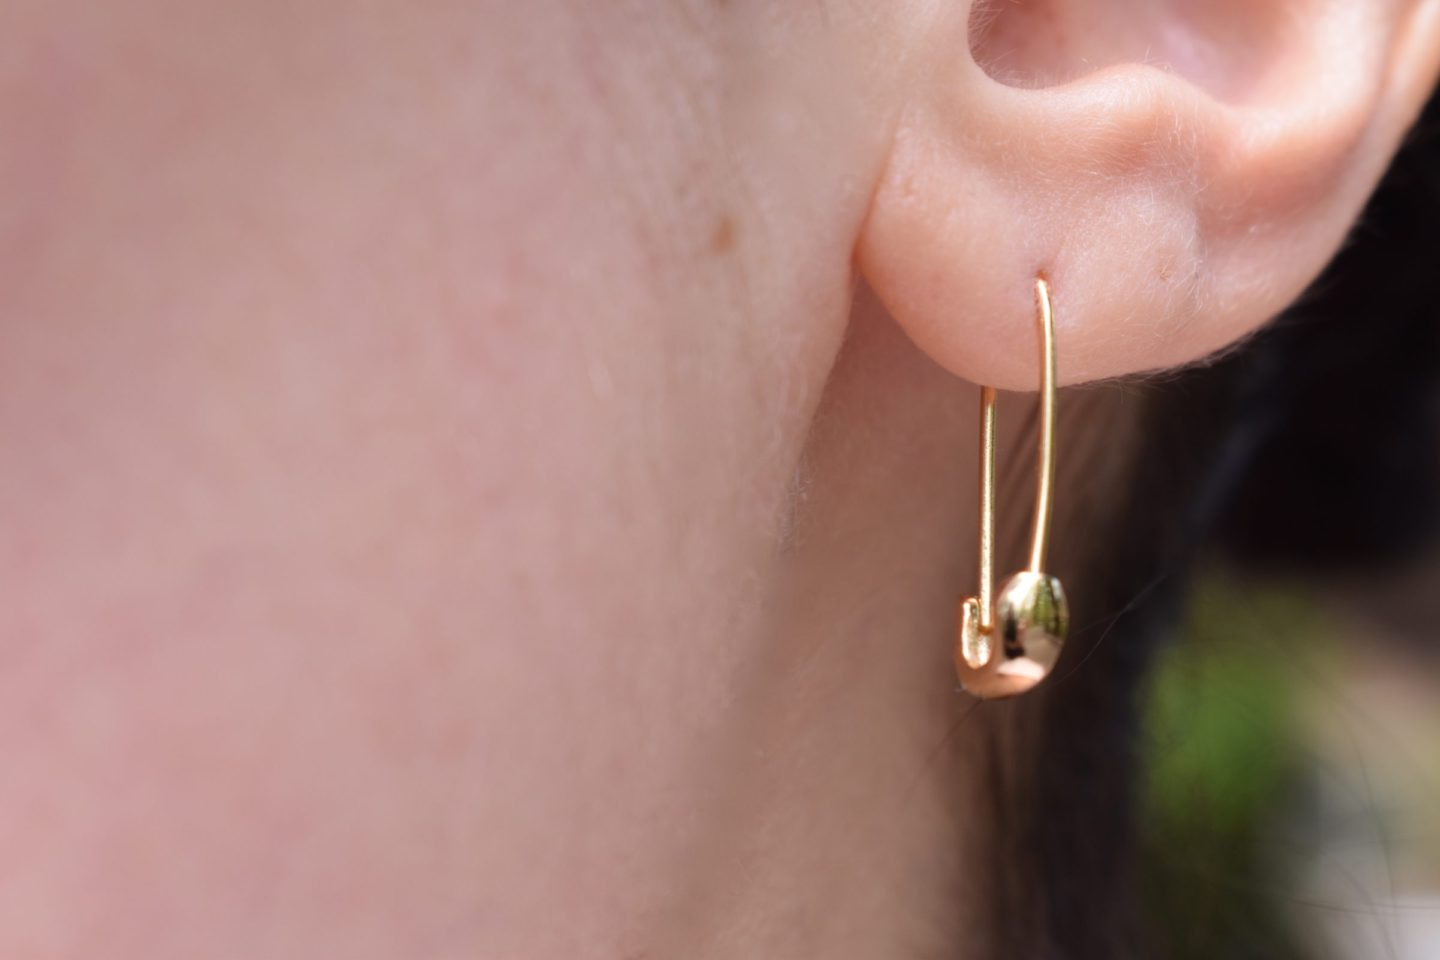 1bd3ab342 ... safety pin earrings by Kris Nations were just too cute to pass up. The  gold vermeil is very lightweight and comfortable and can be worn together  with ...